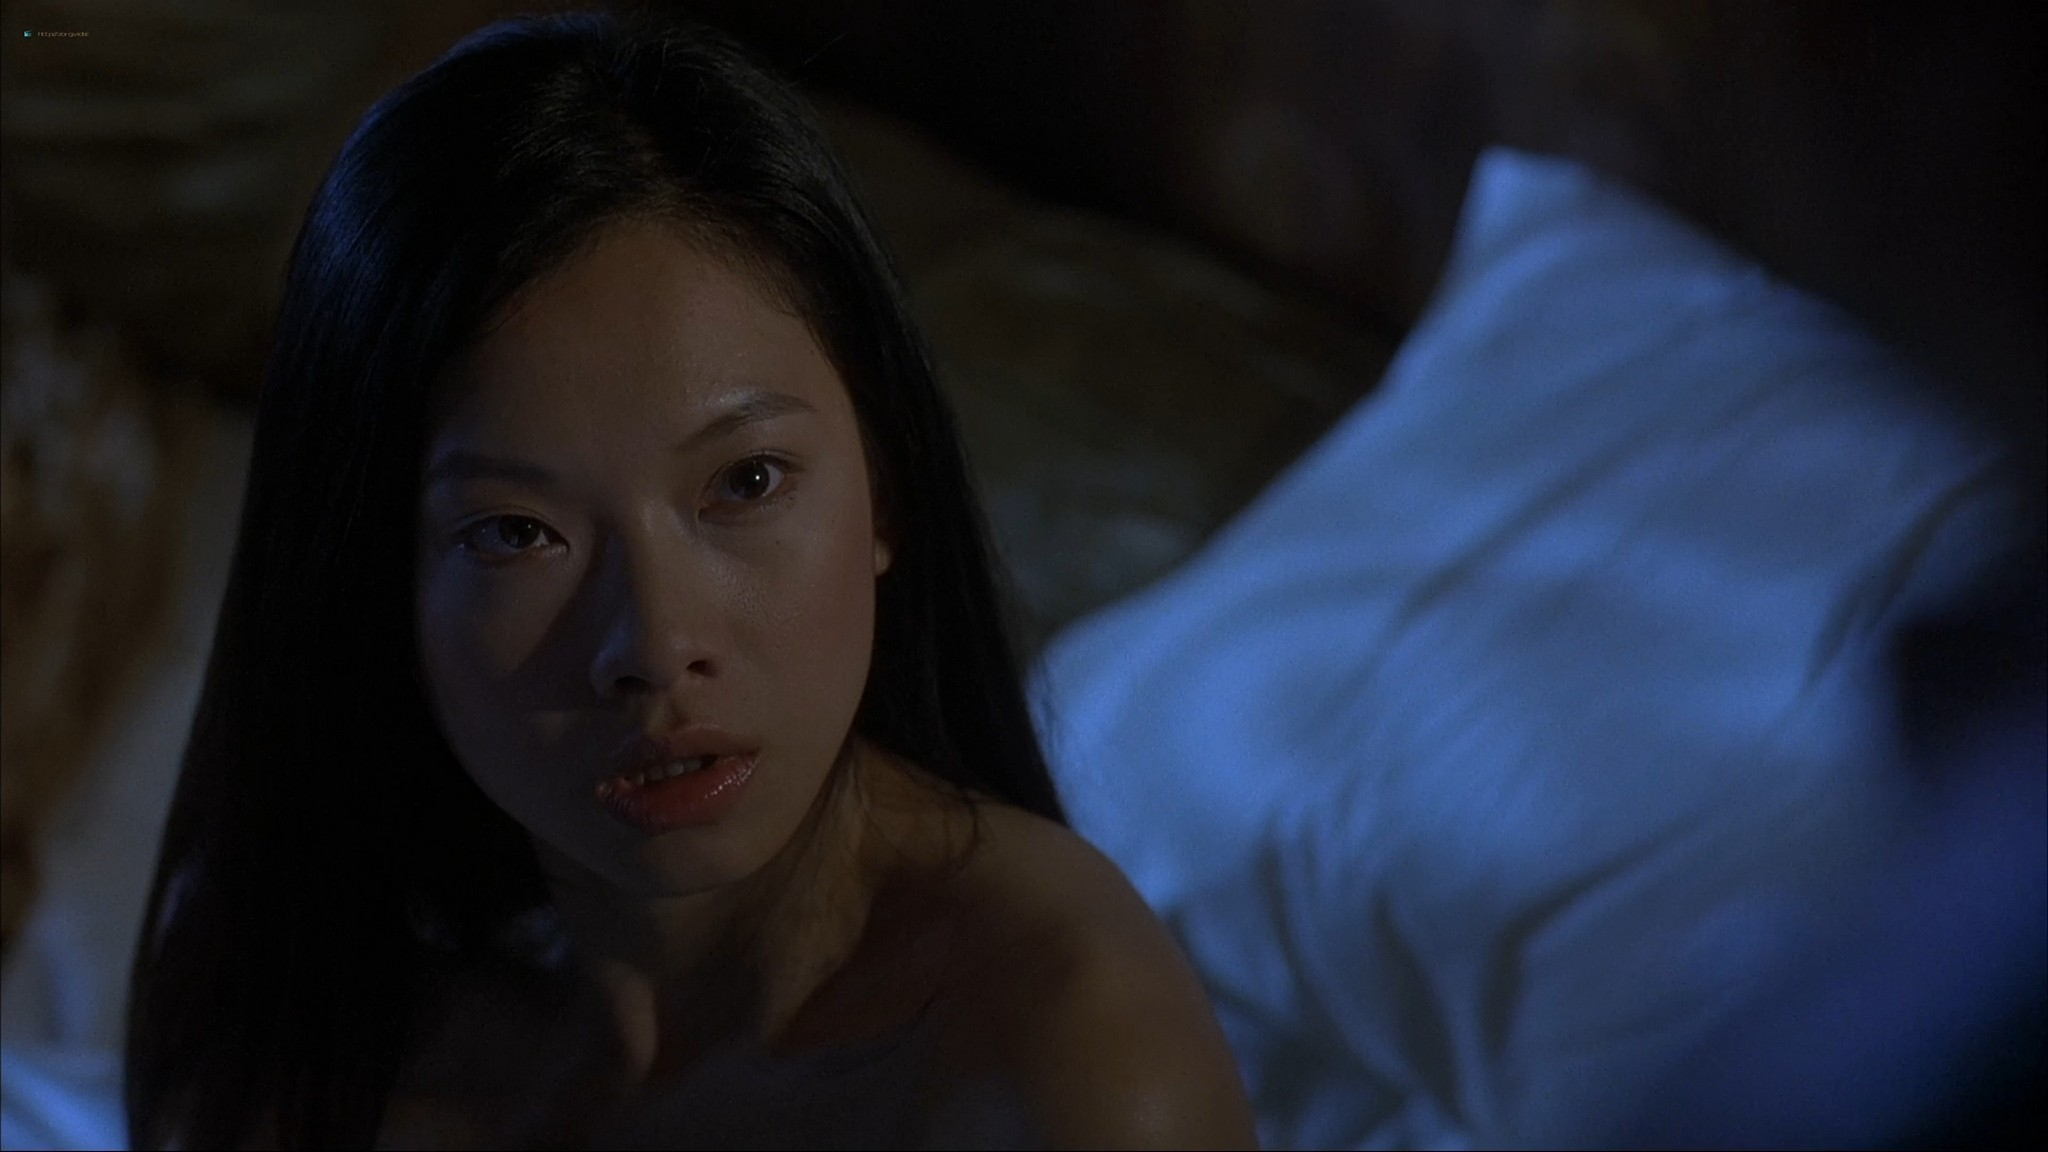 Kata Dobo nude Michelle Goh Elaine Tan hot sexy Out for a Kill 2003 1080p BluRay 11